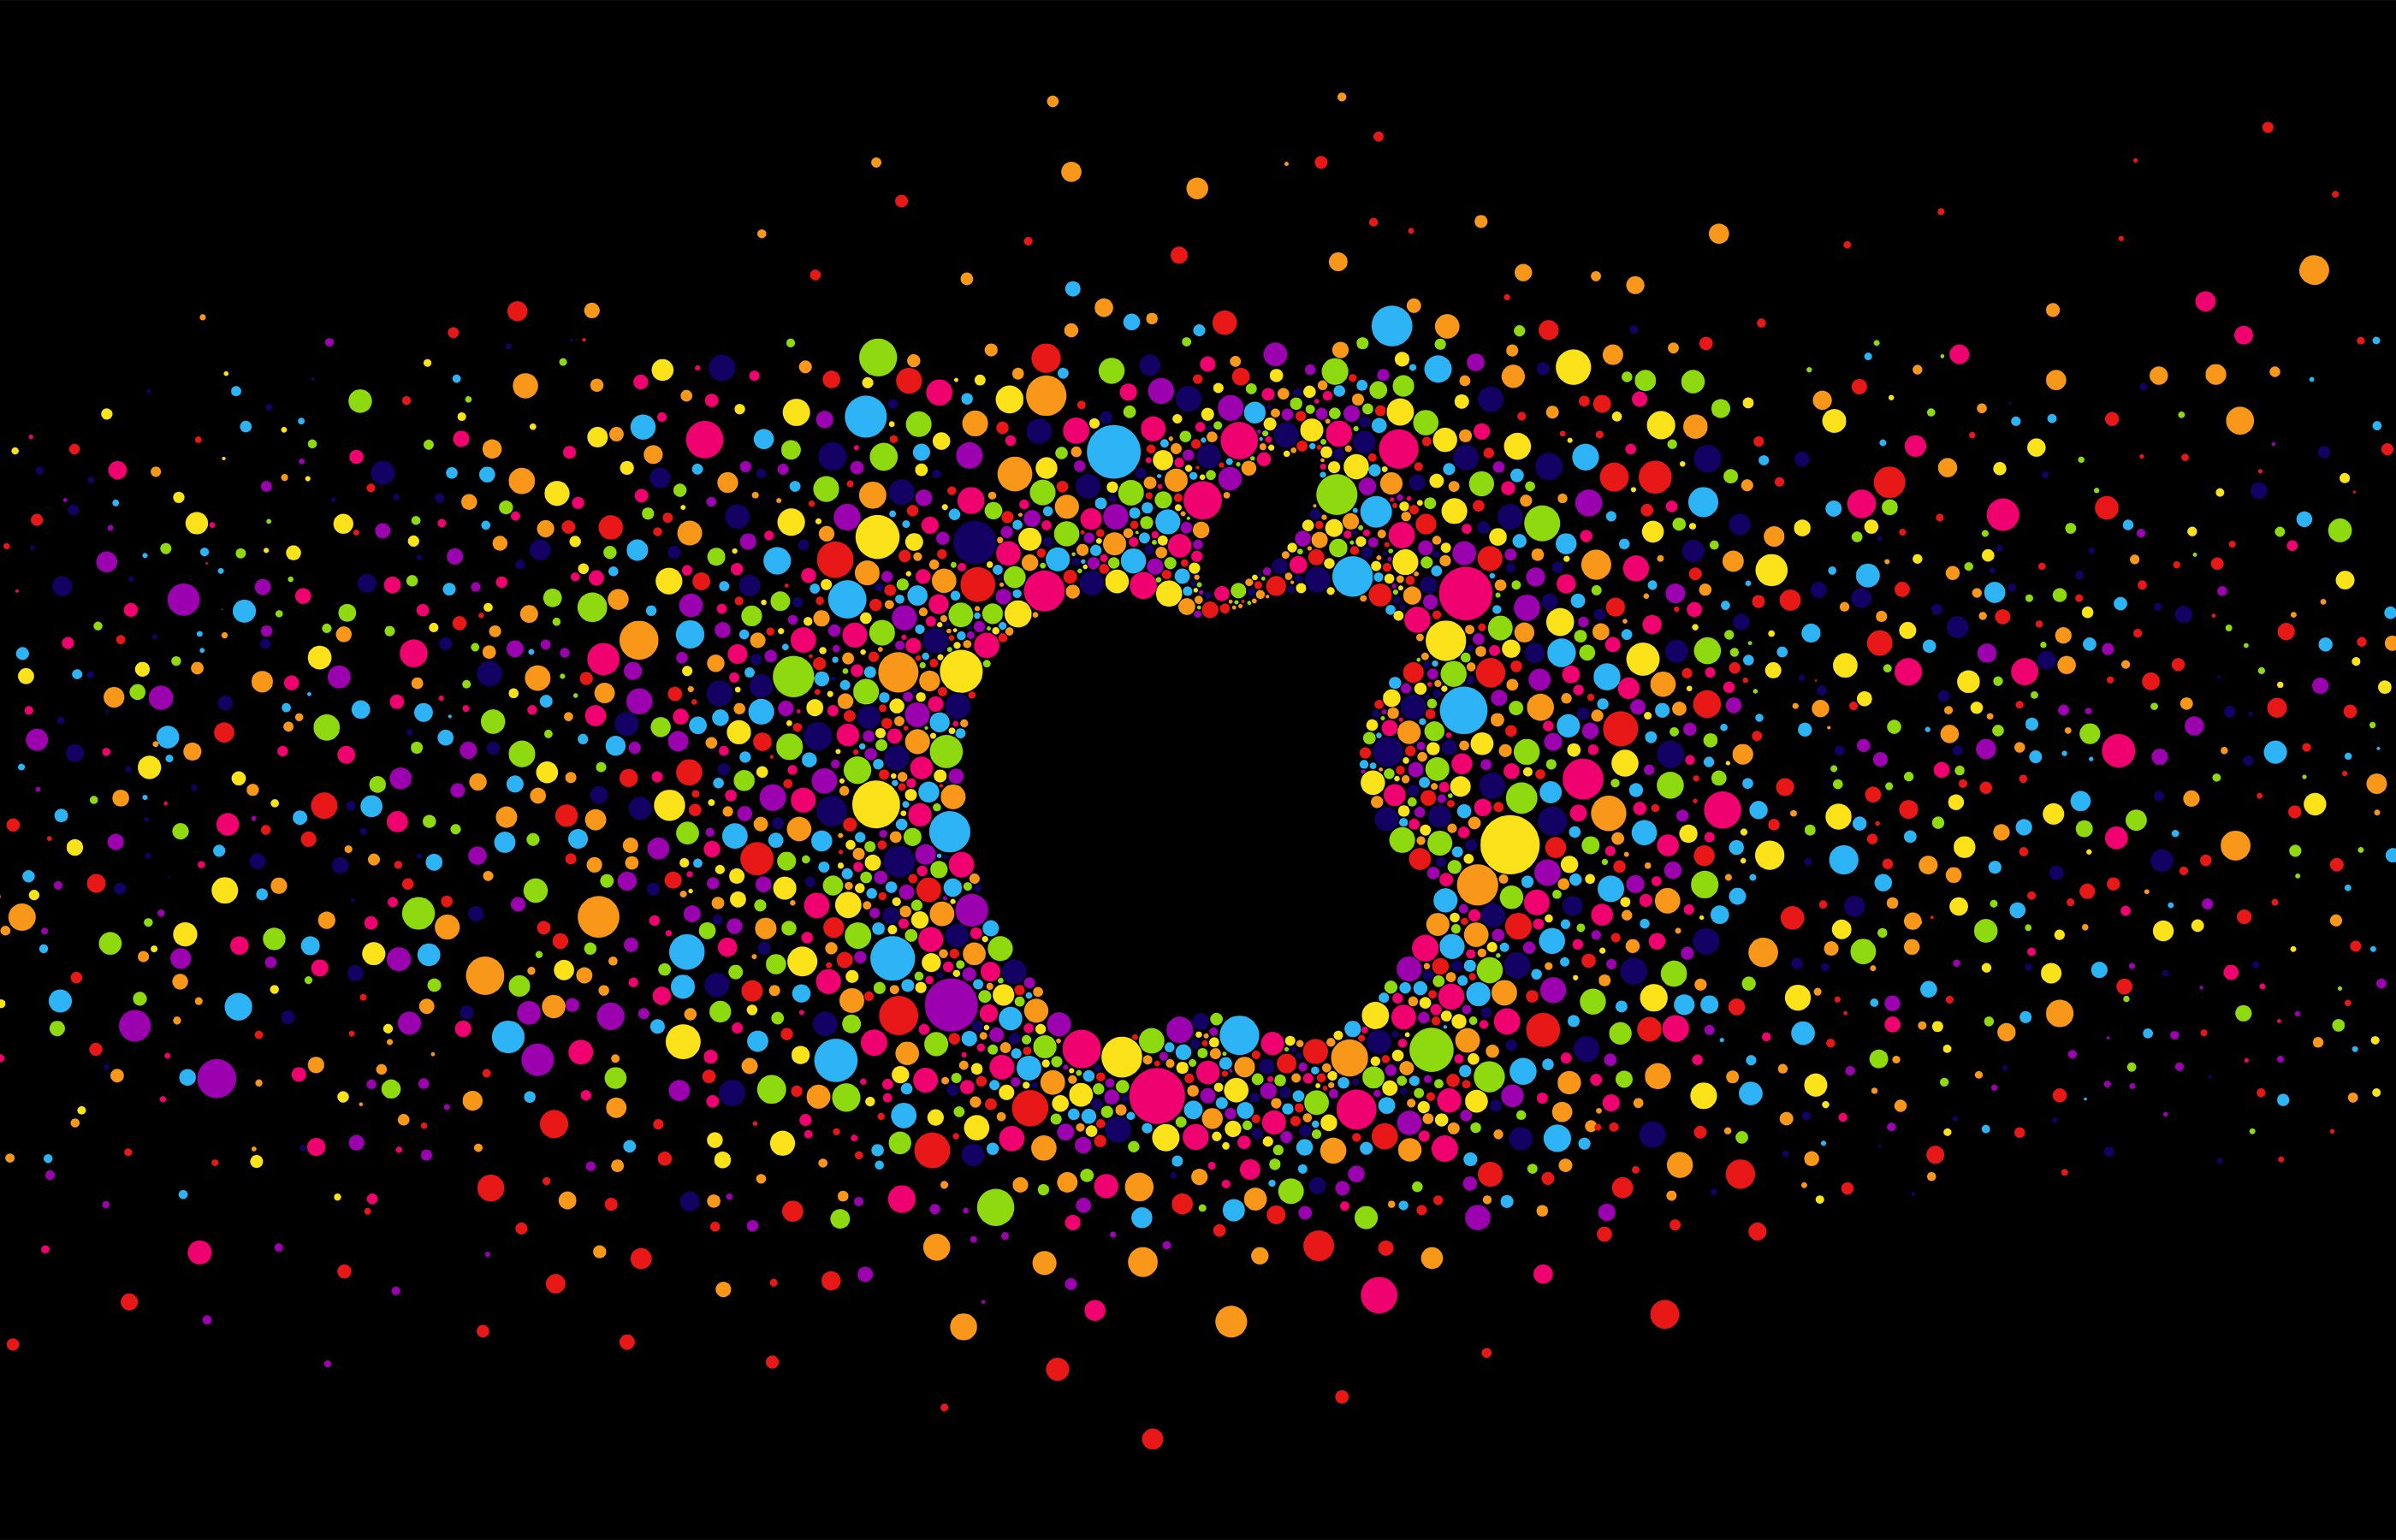 2800x1800 Wallpaper Apple Logo Bright Circles Colorful